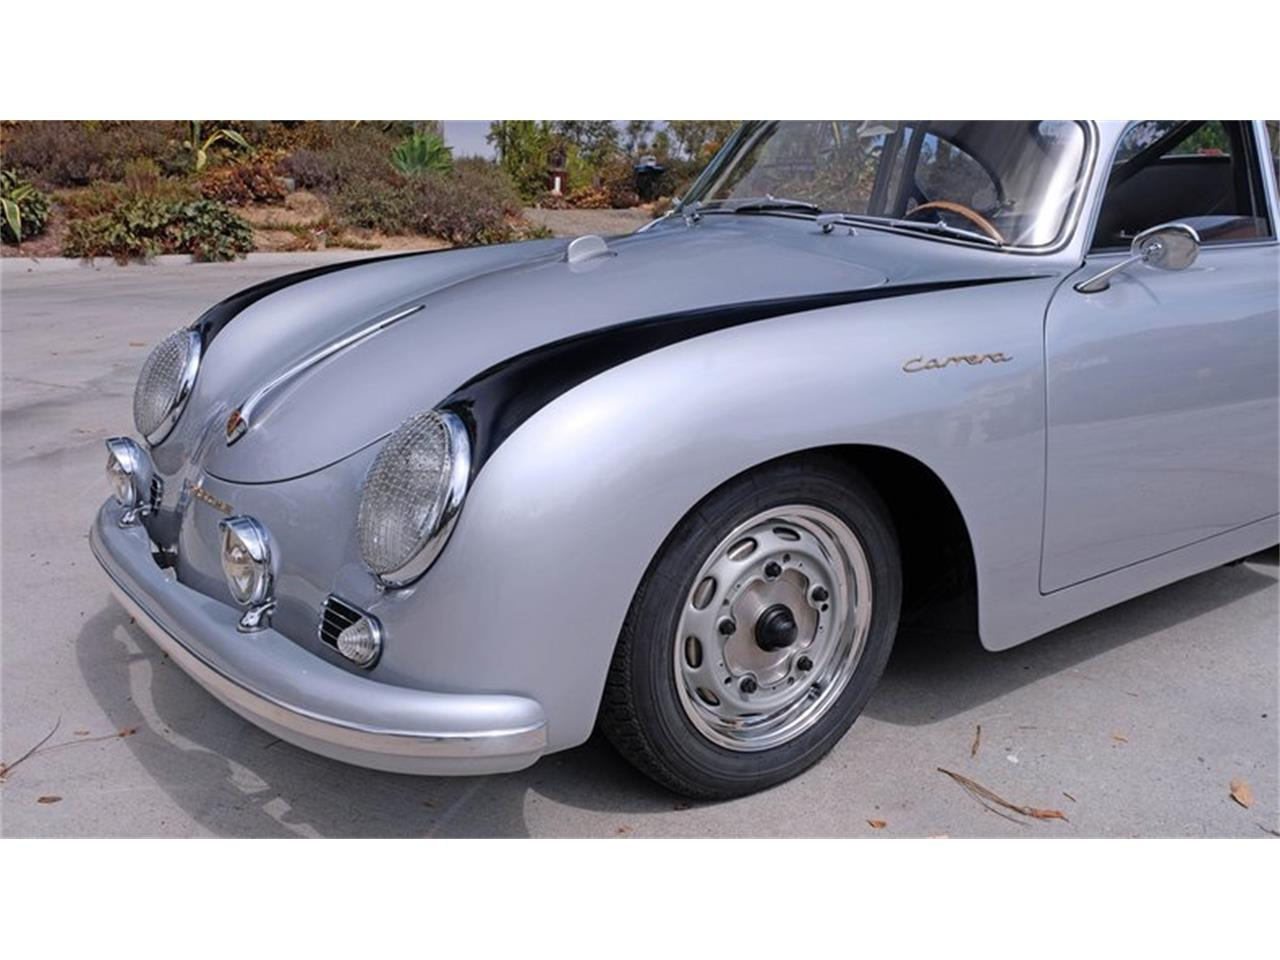 Large Picture of '57 Porsche 356 located in San Diego California Auction Vehicle - Q2HJ